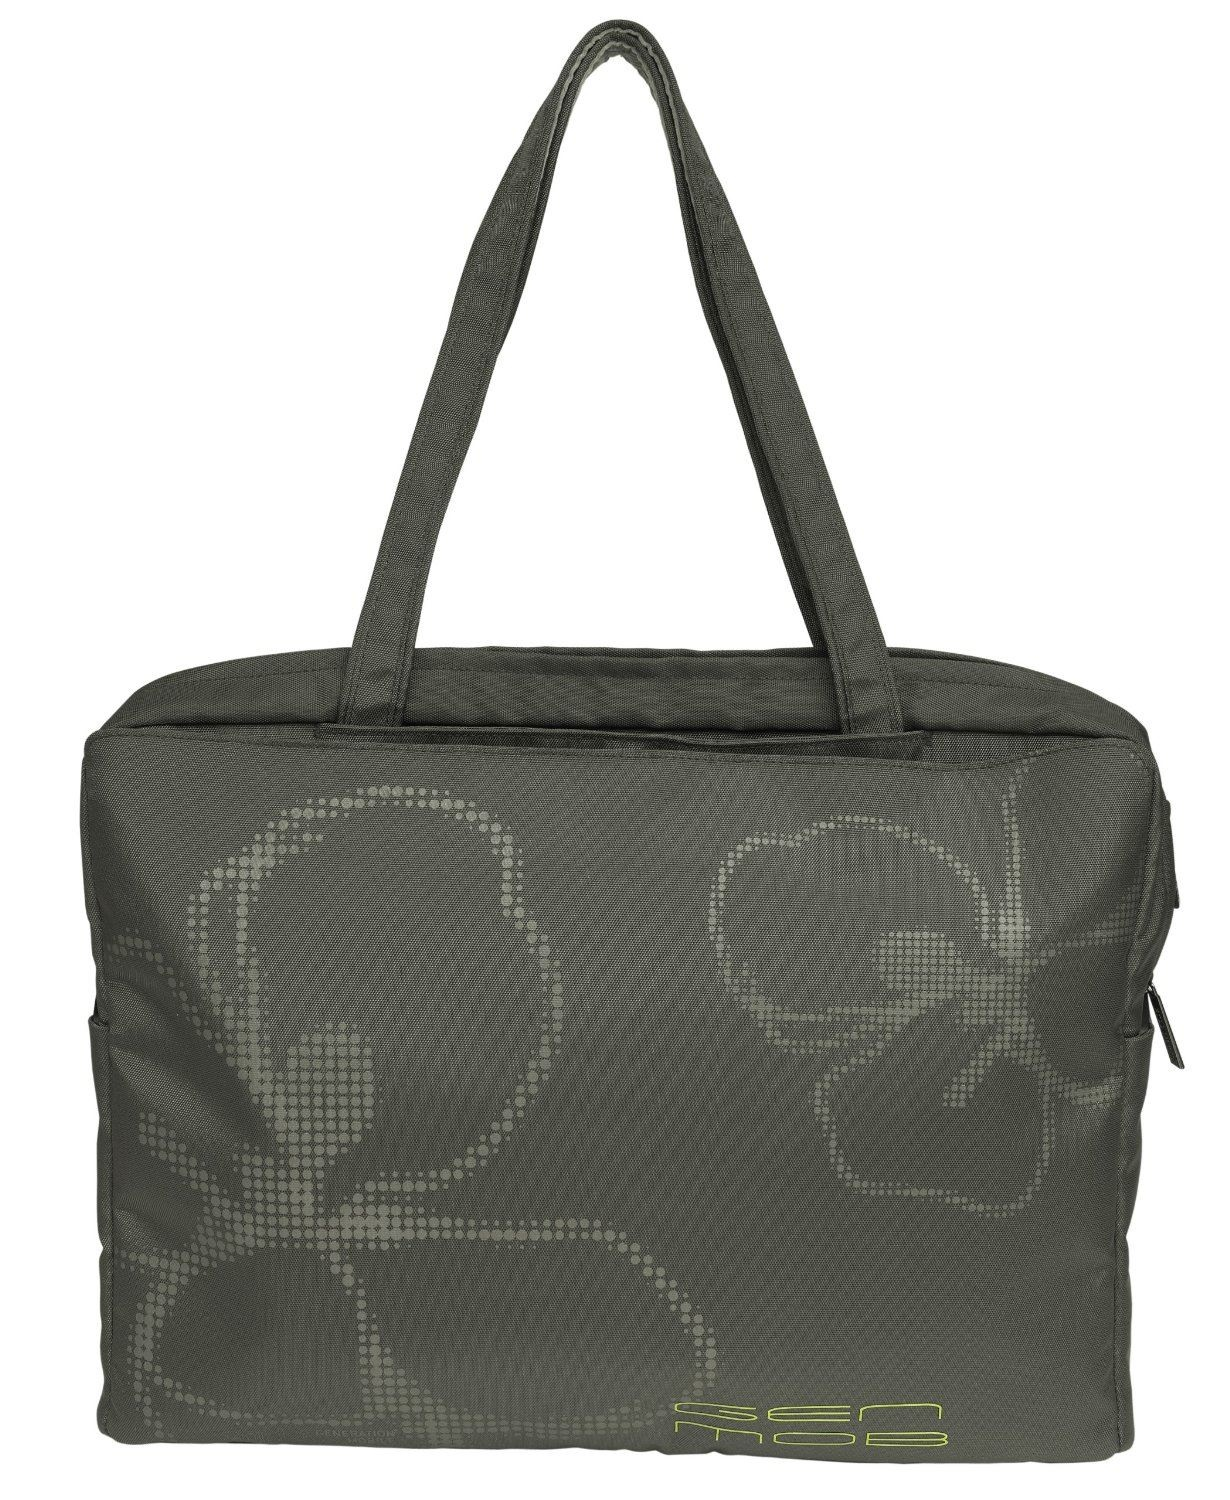 Golla Laptop Bag Diva 15 - 16 inch (Army Green)